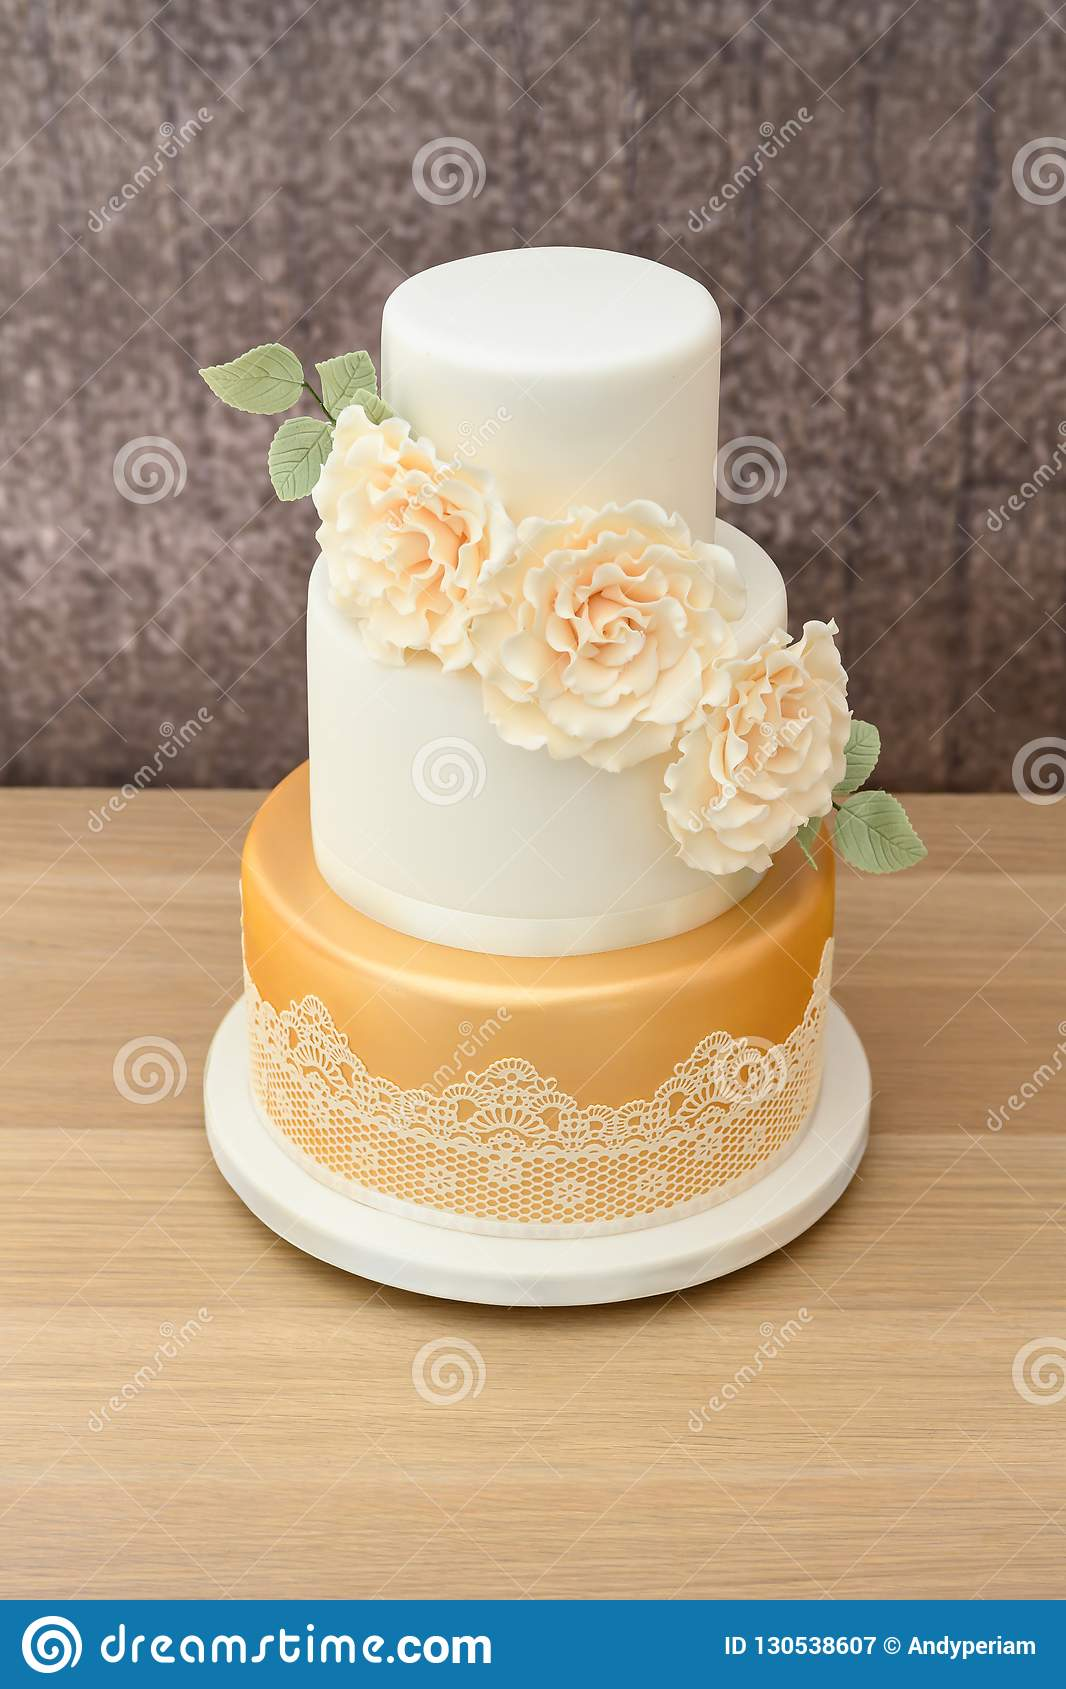 3 Tier Wedding Cake Stock Image Image Of Frosting Event 130538607